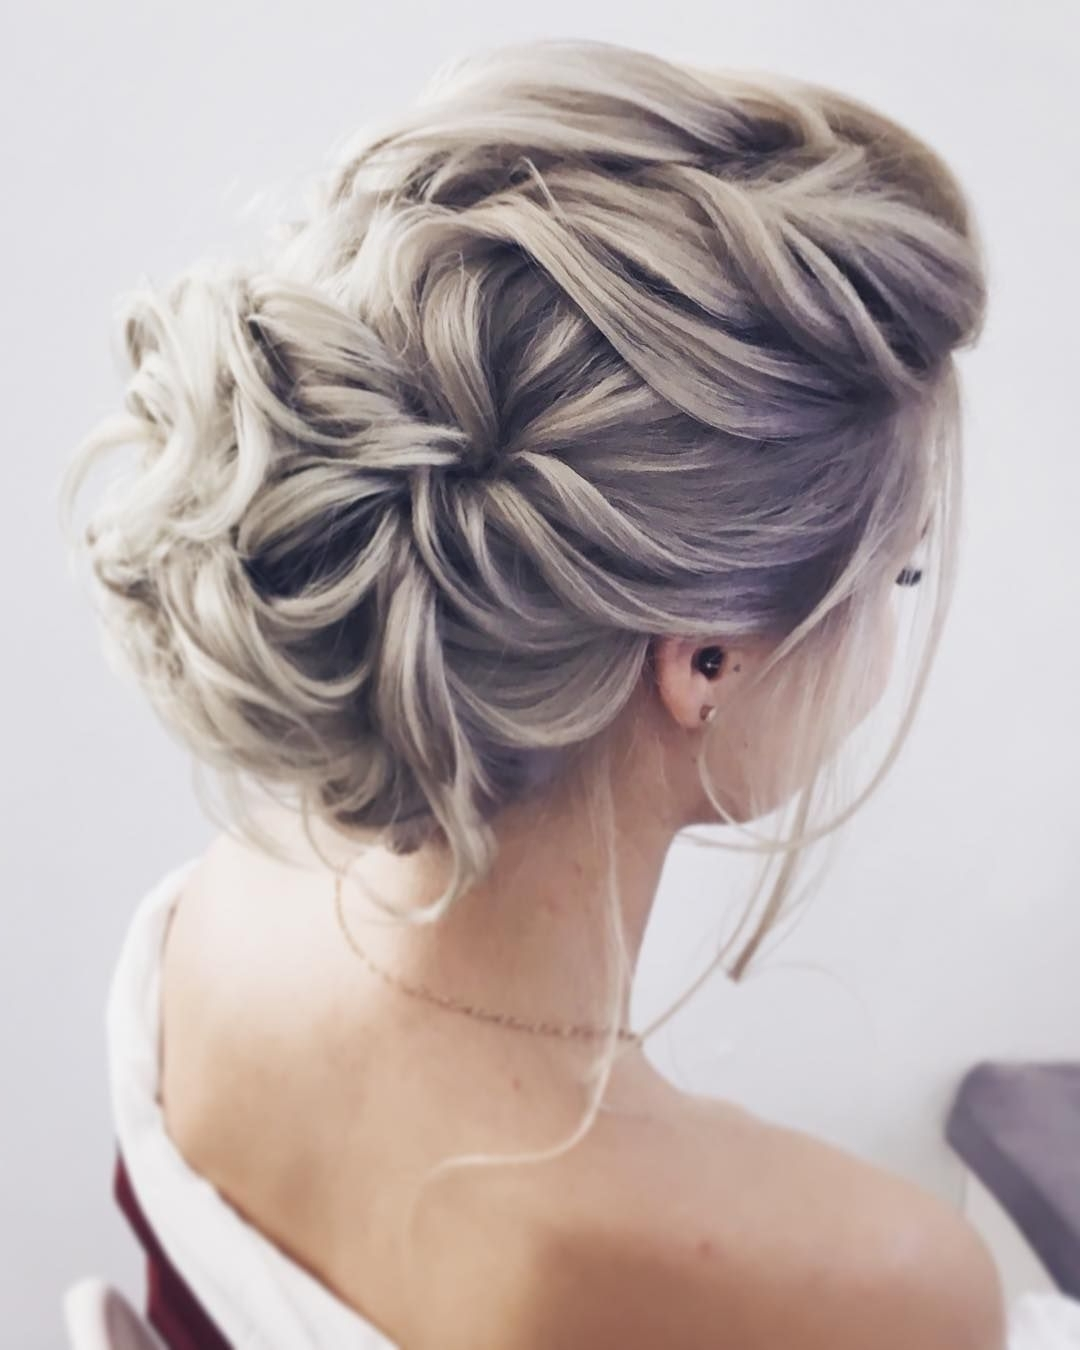 Updo Elegant Wedding Hairstyles For Long Hair #weddinghairstyles In Messy Updo Hairstyles For Wedding (View 2 of 15)